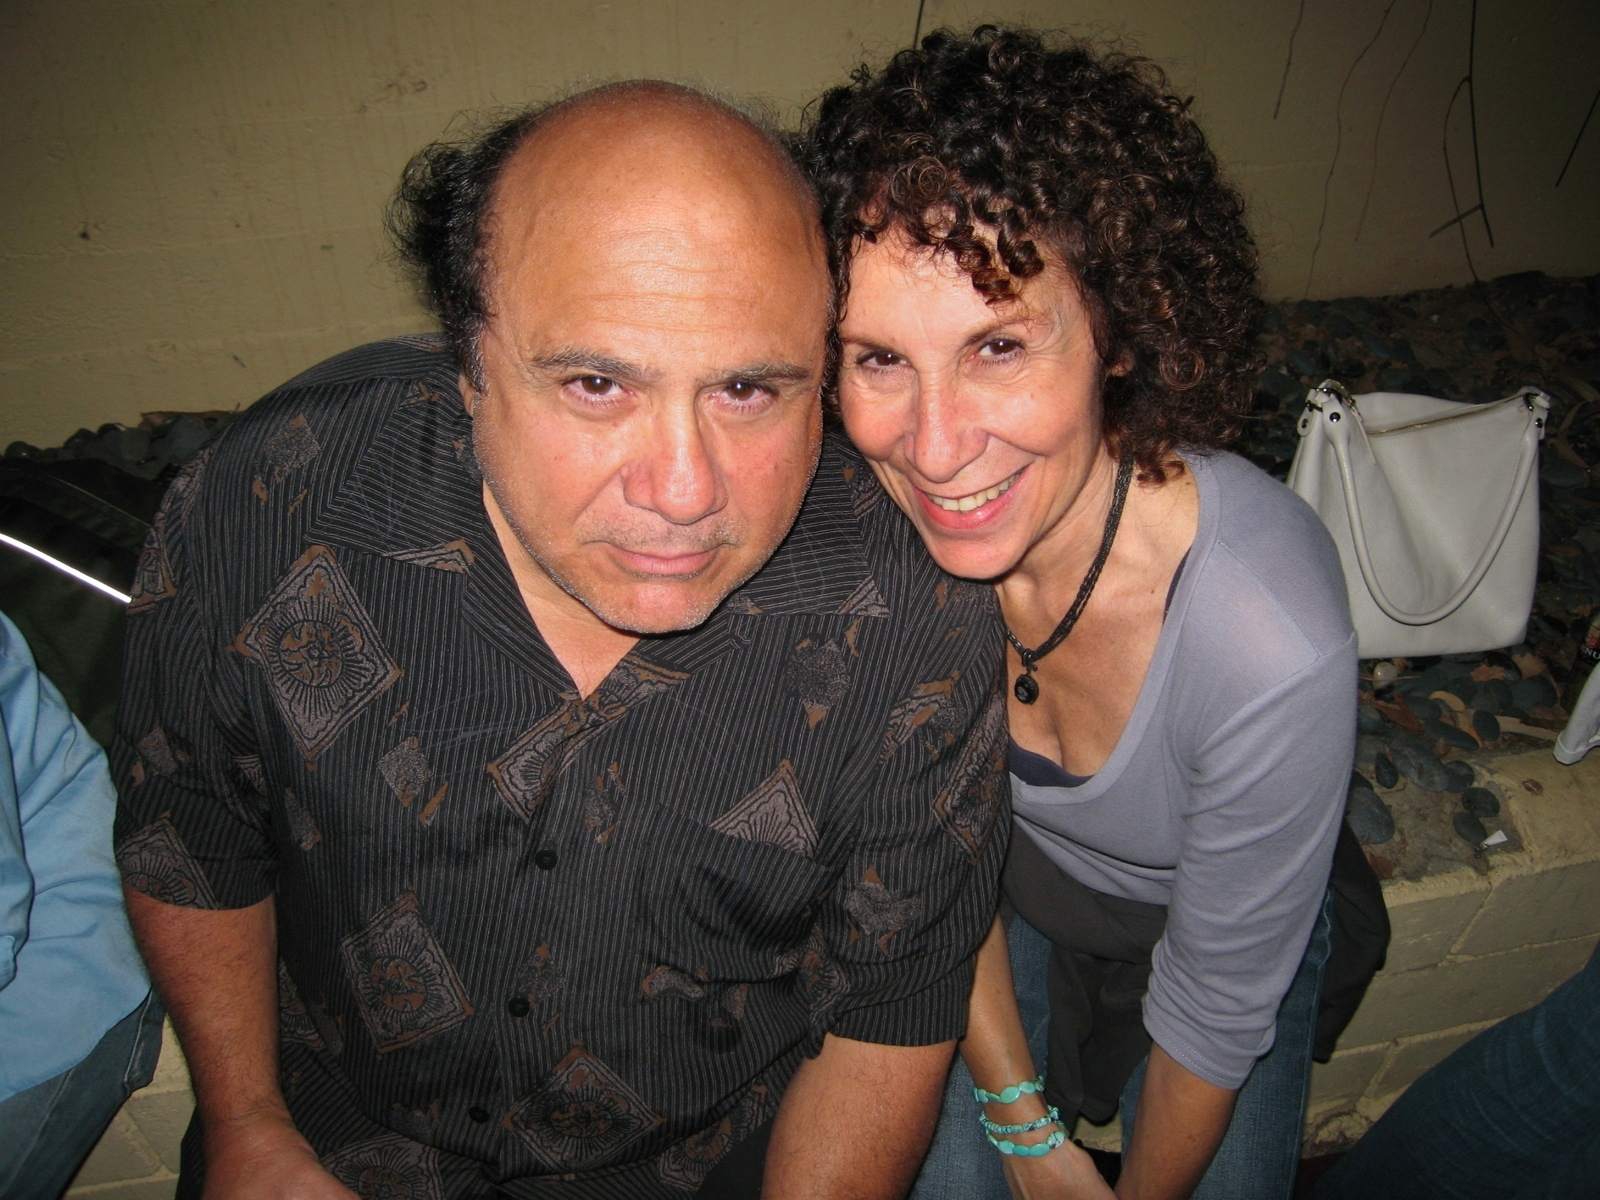 Danny Devito and Rhea Perlman had played Matilda's parents, the Wormwoods in the 1996 movie. Devito is expected to return and star alongside Jodie Comer in the Matilda Movie on Netflix. Source: Commons.Wikimedia